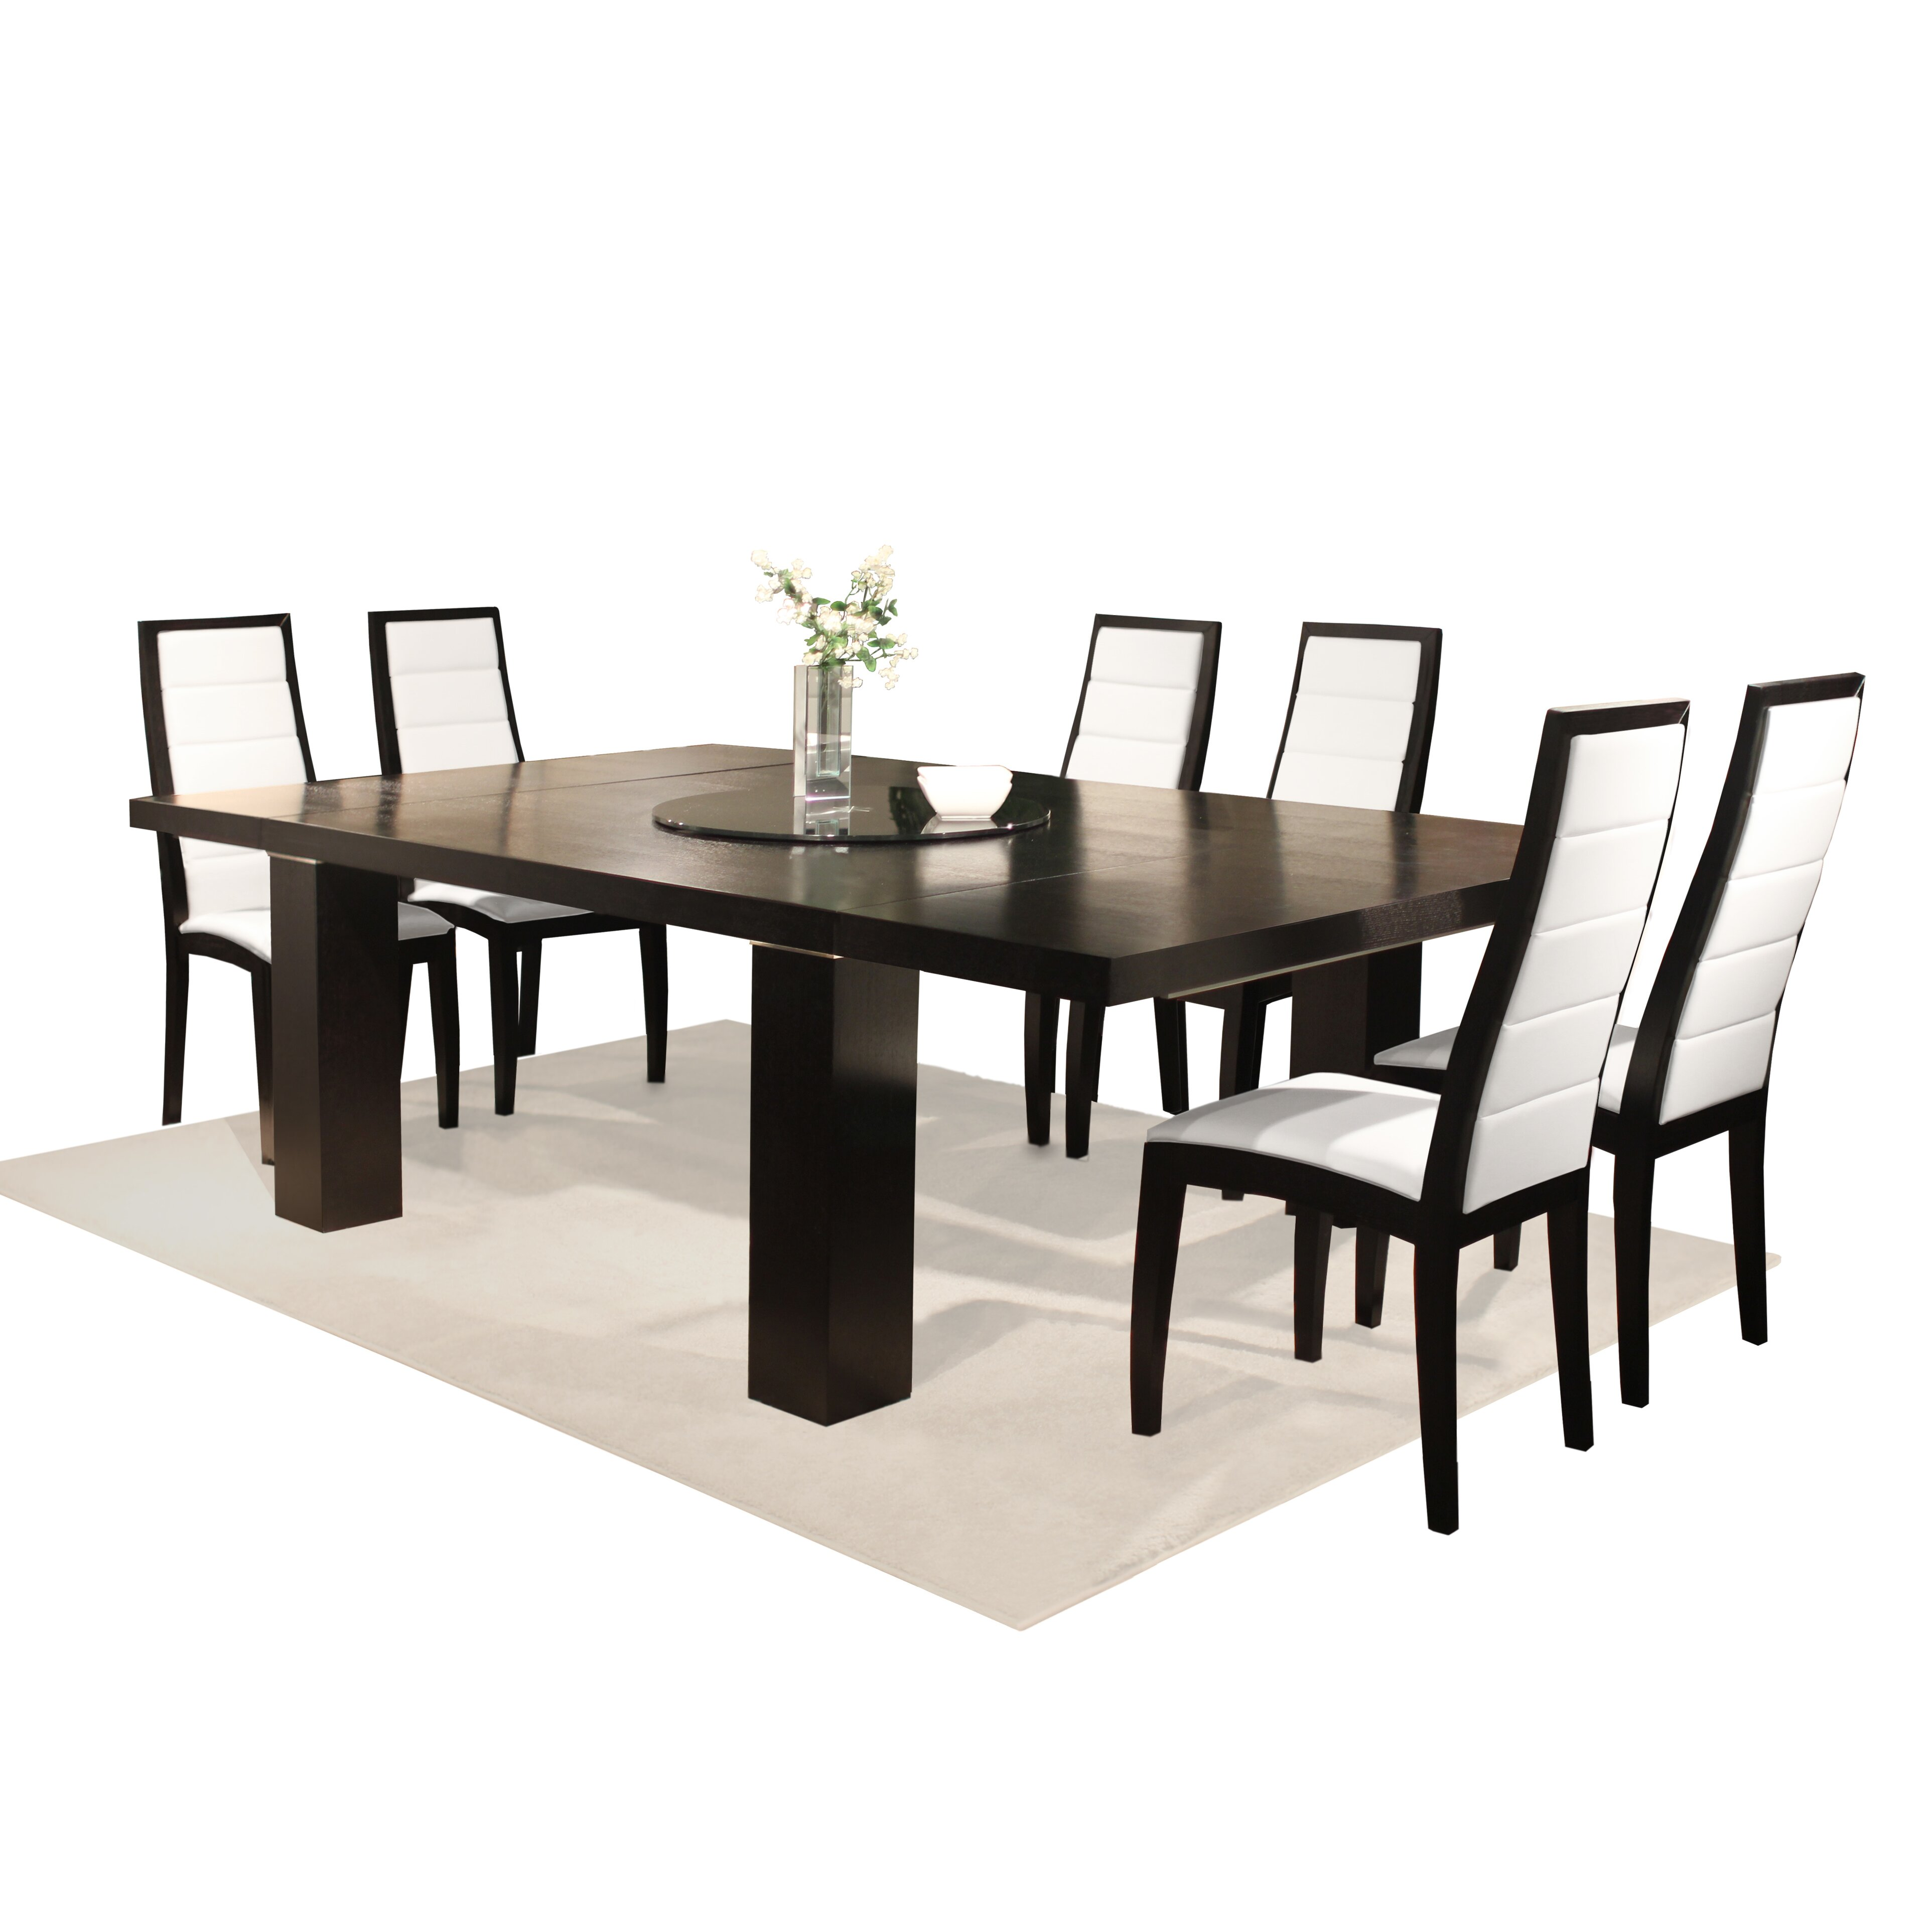 Dining Table Arm Chairs End Tables Bamboo Jordan Dining Table